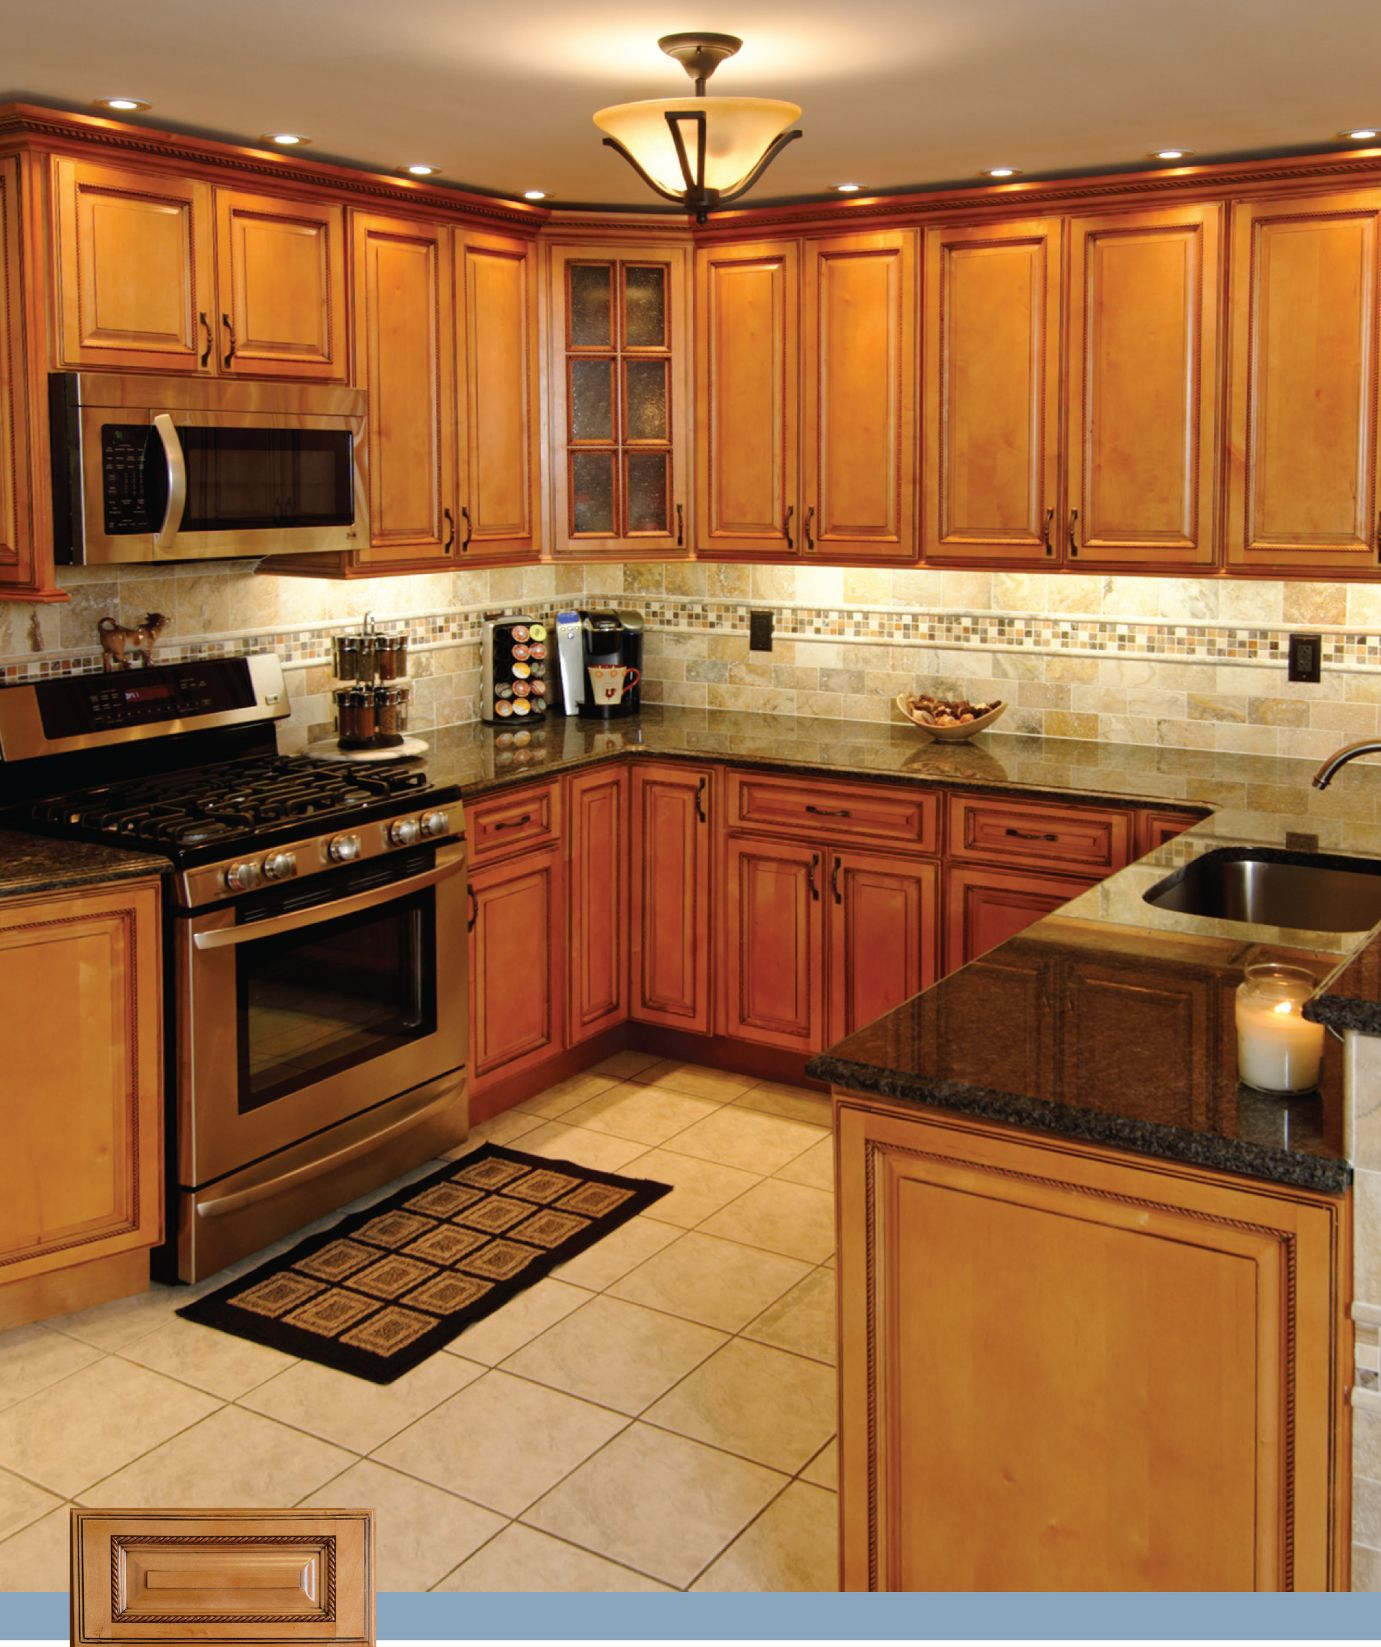 rta kitchen cabinets basic kitchen cabinets 17 best ideas about Rta Kitchen Cabinets on Pinterest Light oak cabinets Dark counters and Discount cabinets